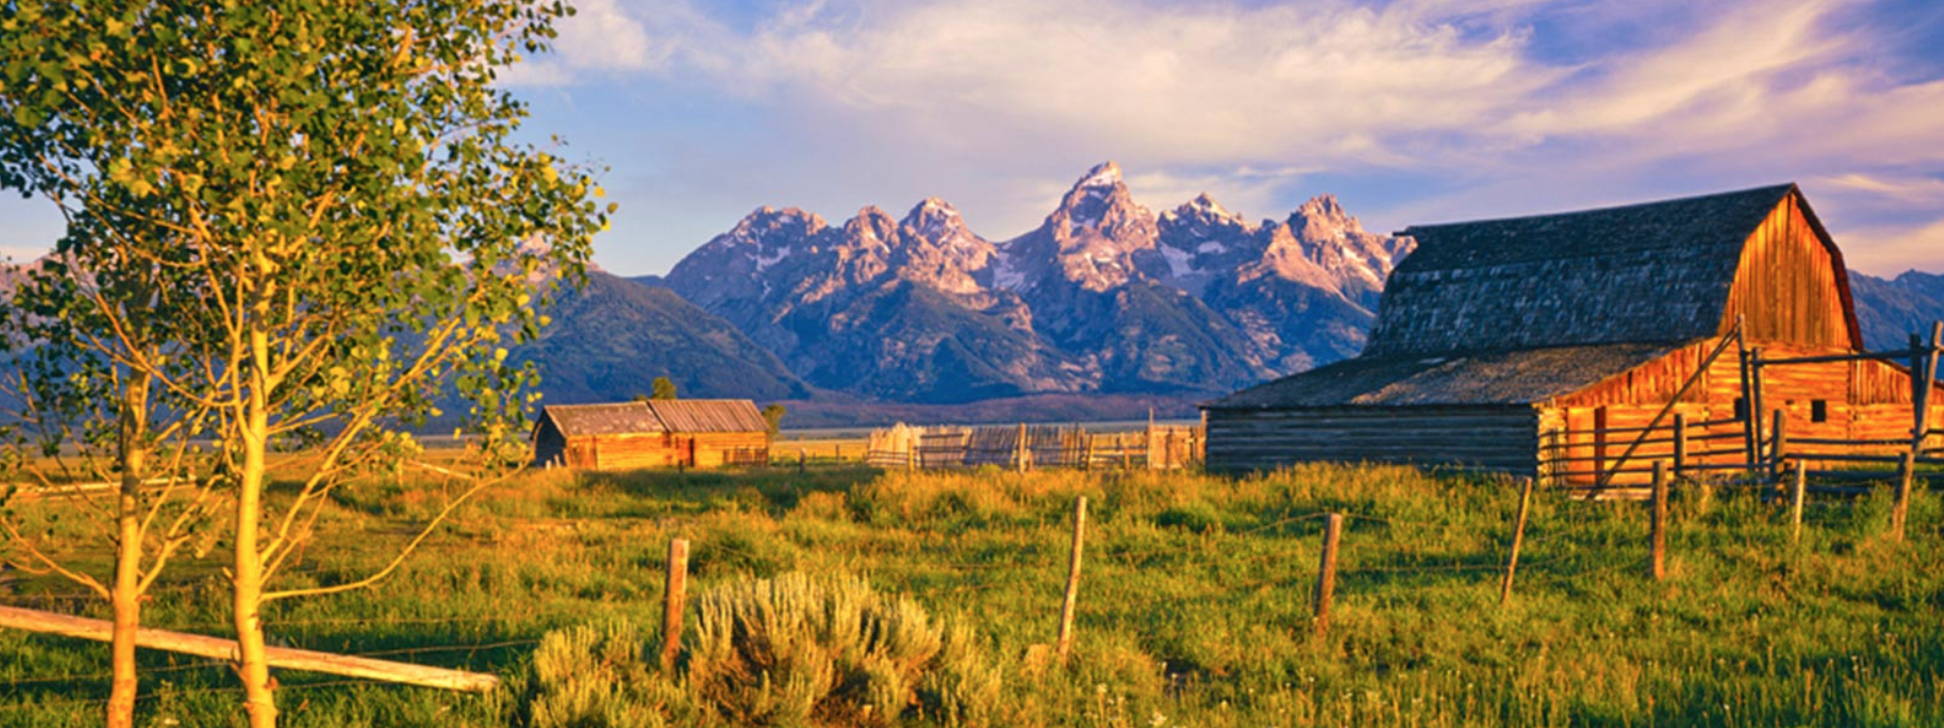 The retreat will take place at Hotel Terra in Jackson Hole, Wyoming, located right in Teton Village with easy access to hiking, mountain biking, golf courses, and Grand Teton National Park.